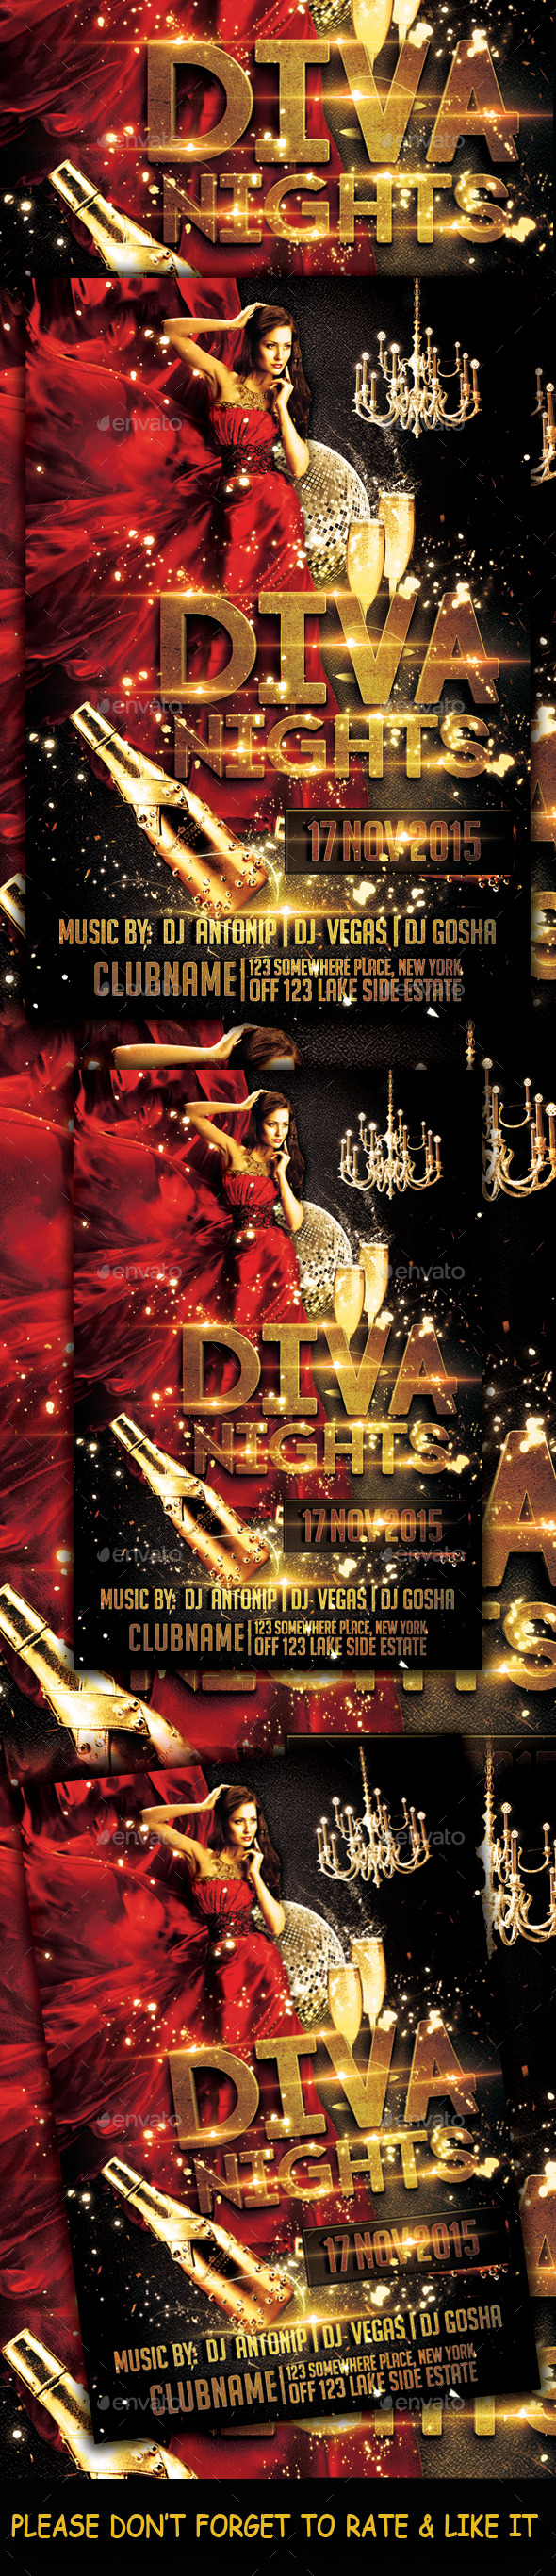 Diva Night Flyer - Clubs & Parties Events